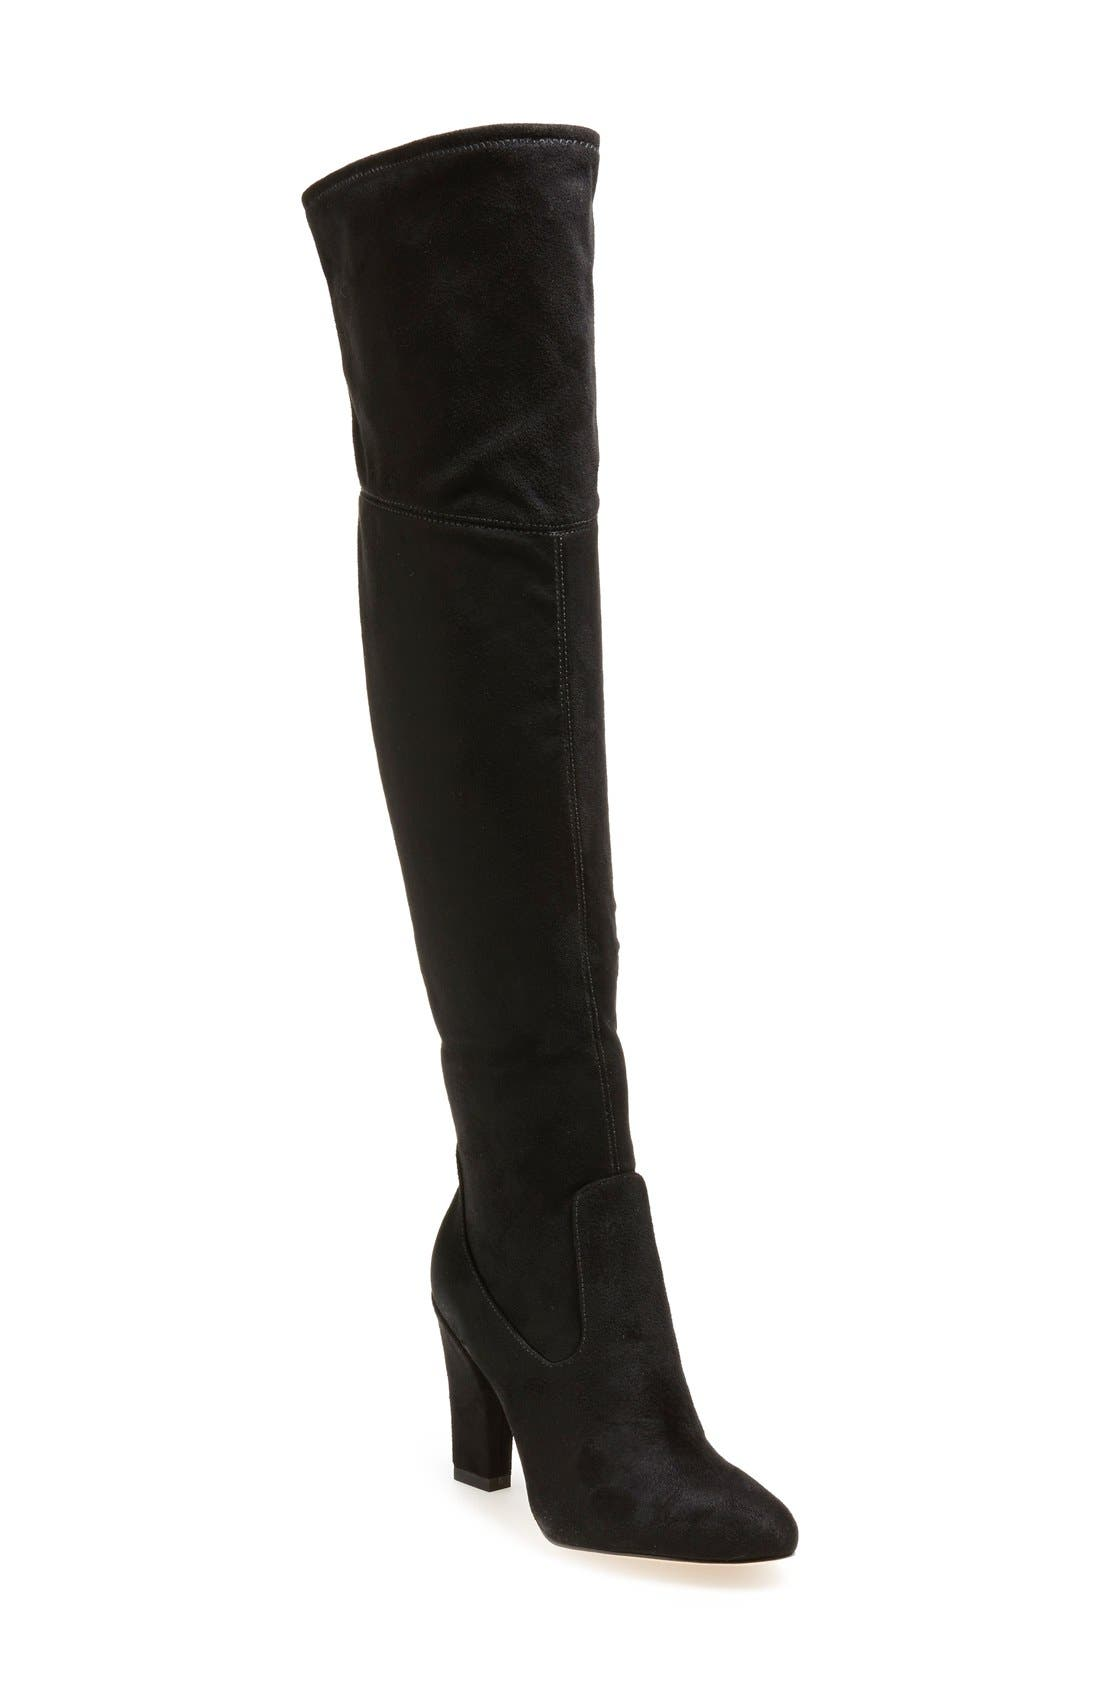 'Sarena' Over the Knee Stretch Boot,                             Main thumbnail 1, color,                             Black